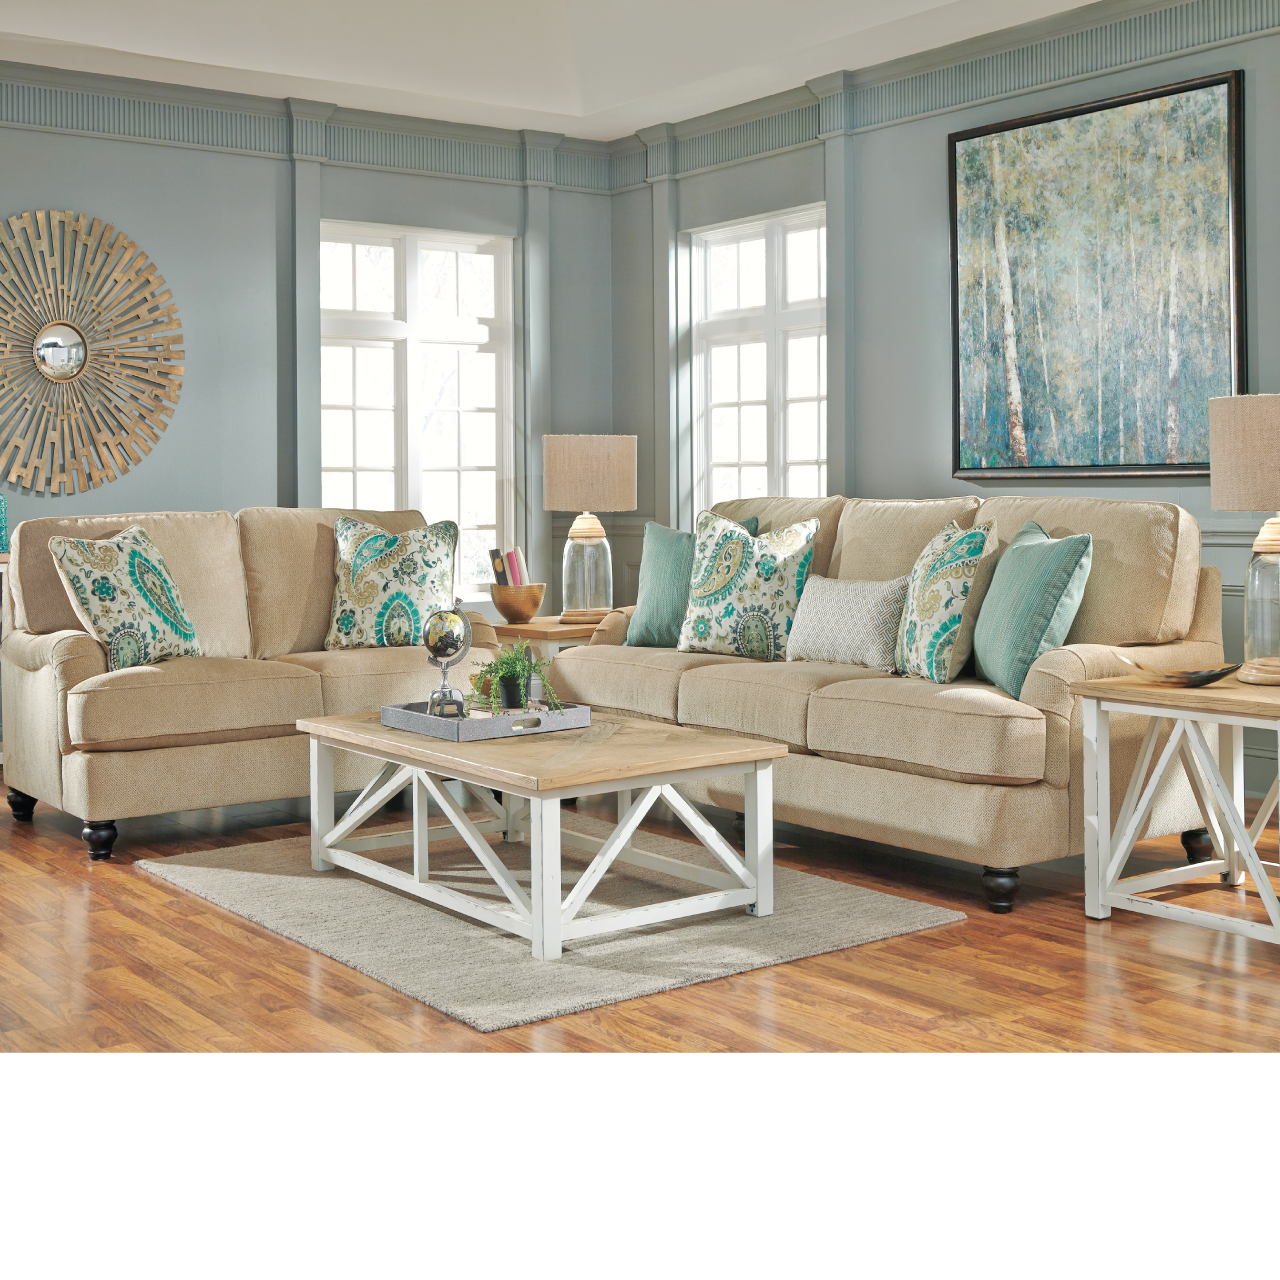 Living Room Wall Color Design Details Uncovered Coastal Living Room Turquoise